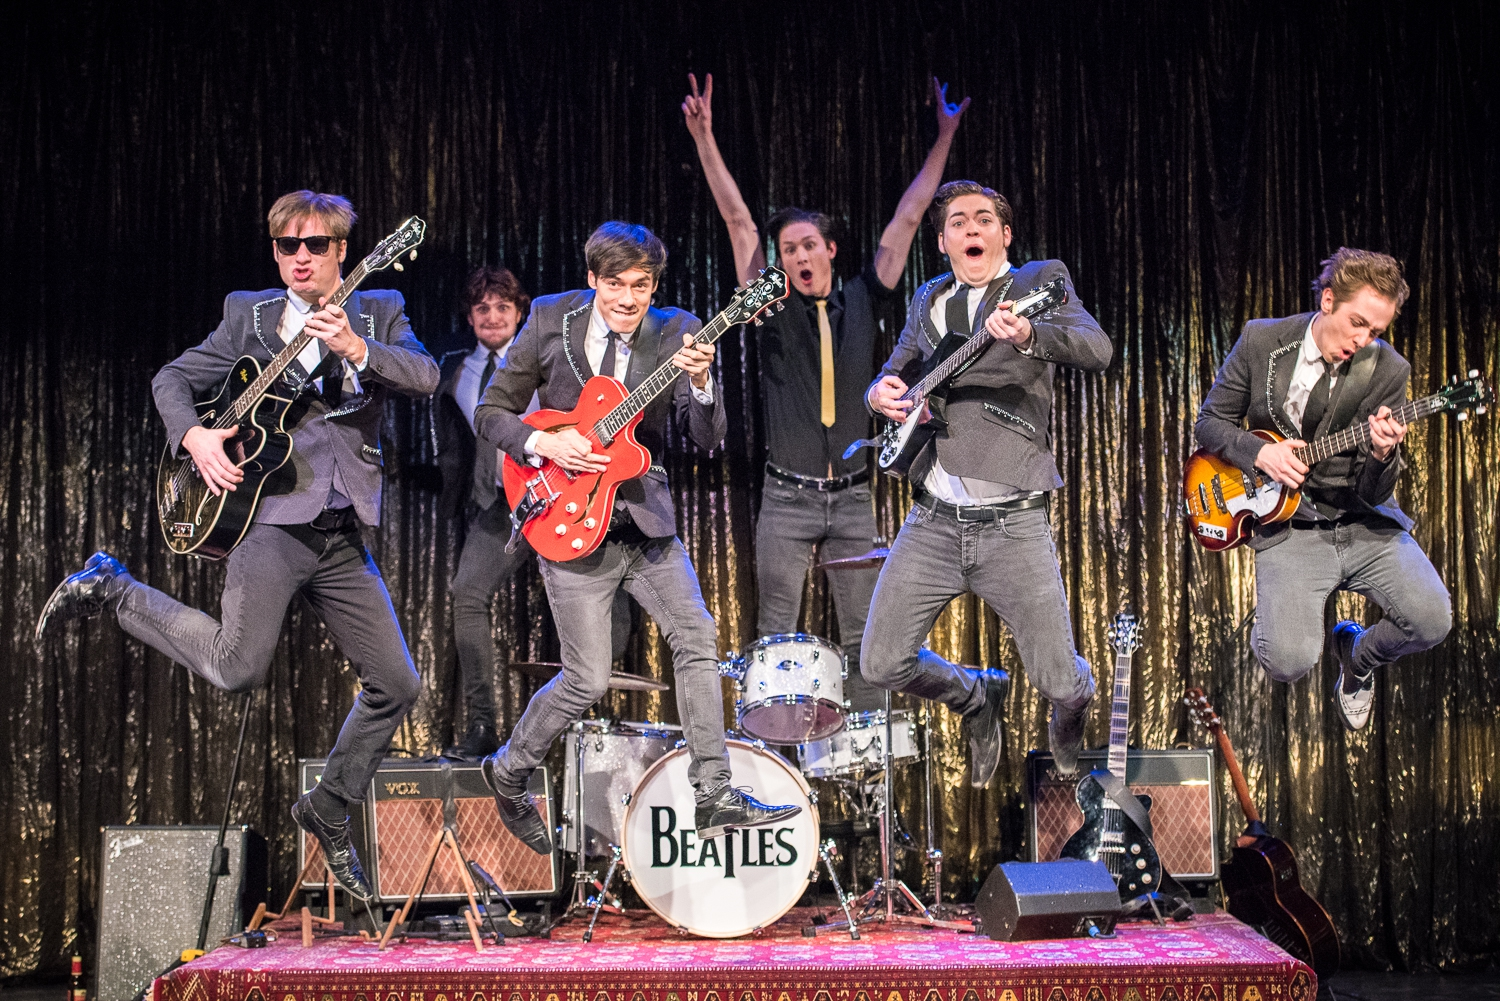 Beatles-forestilling på Theater am Kuhdamm